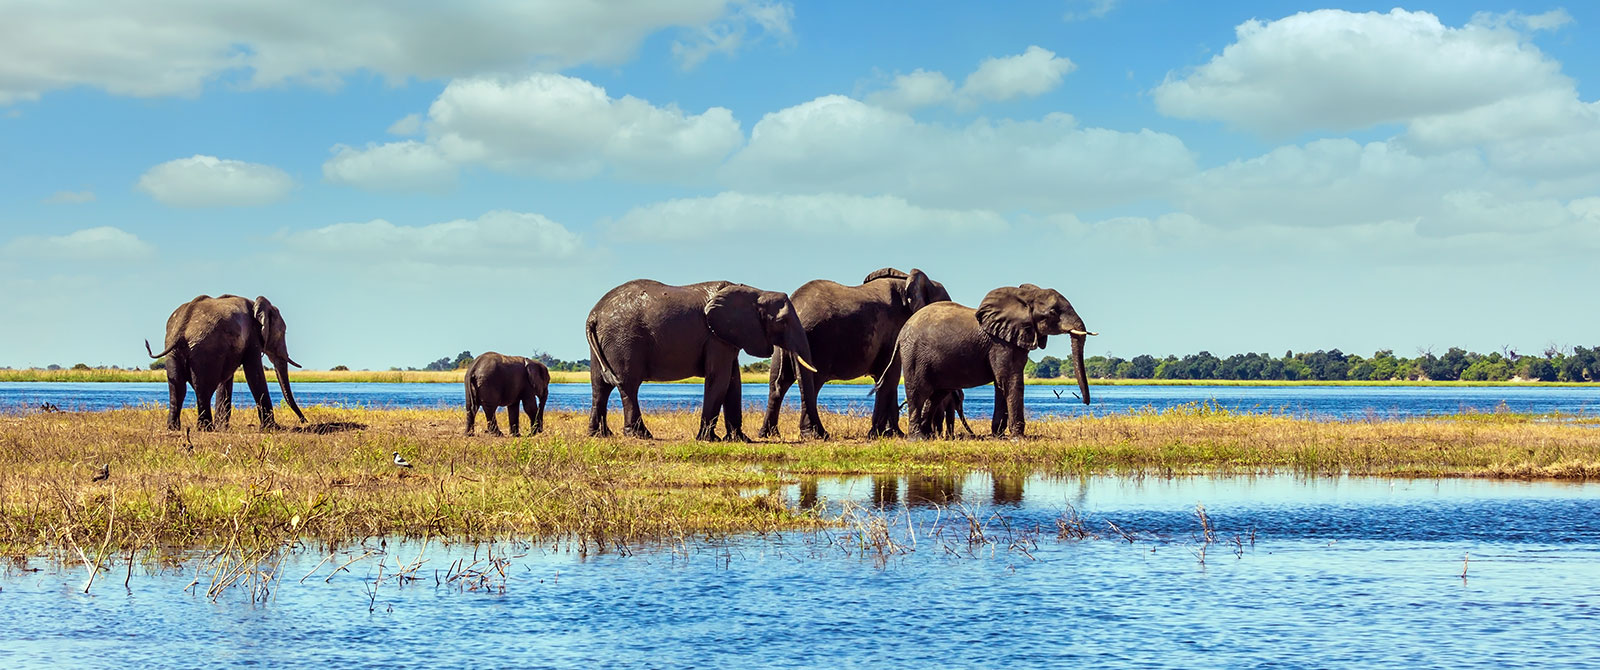 Elephants on a Chobe River Safari - Chobe National Park